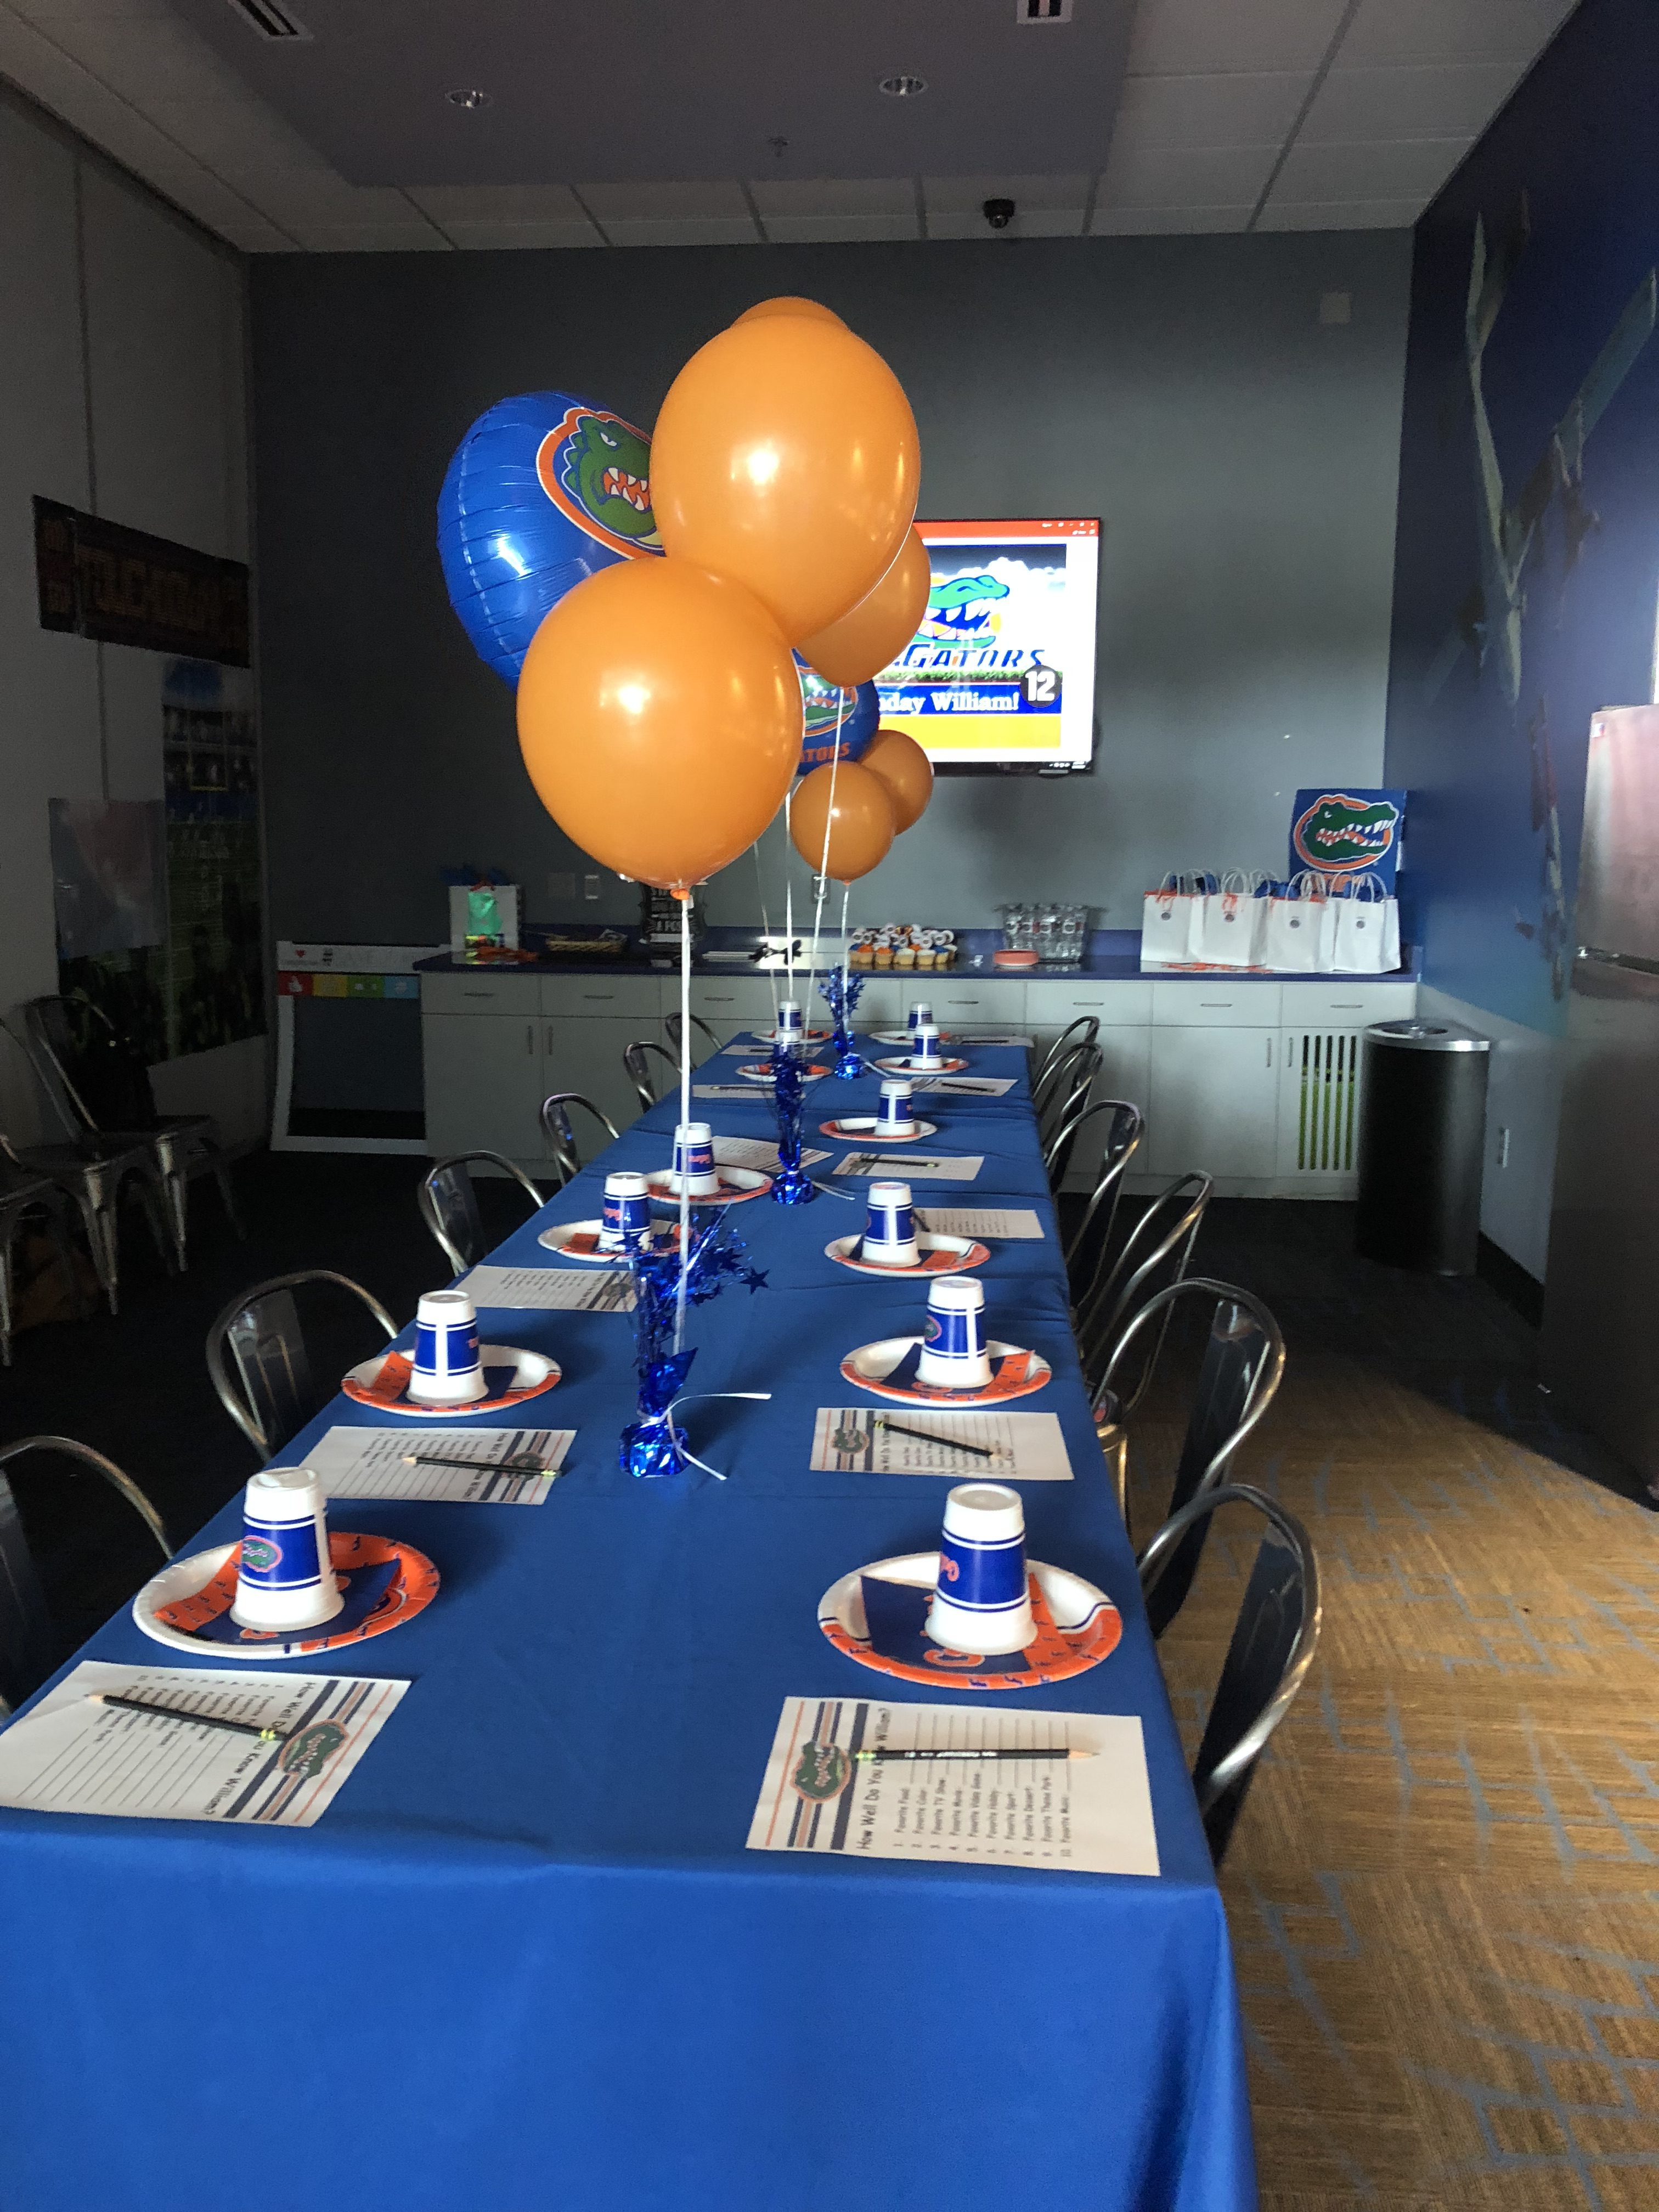 Top 40 Birthday Places In Central Florida To Celebrate New Hue Media